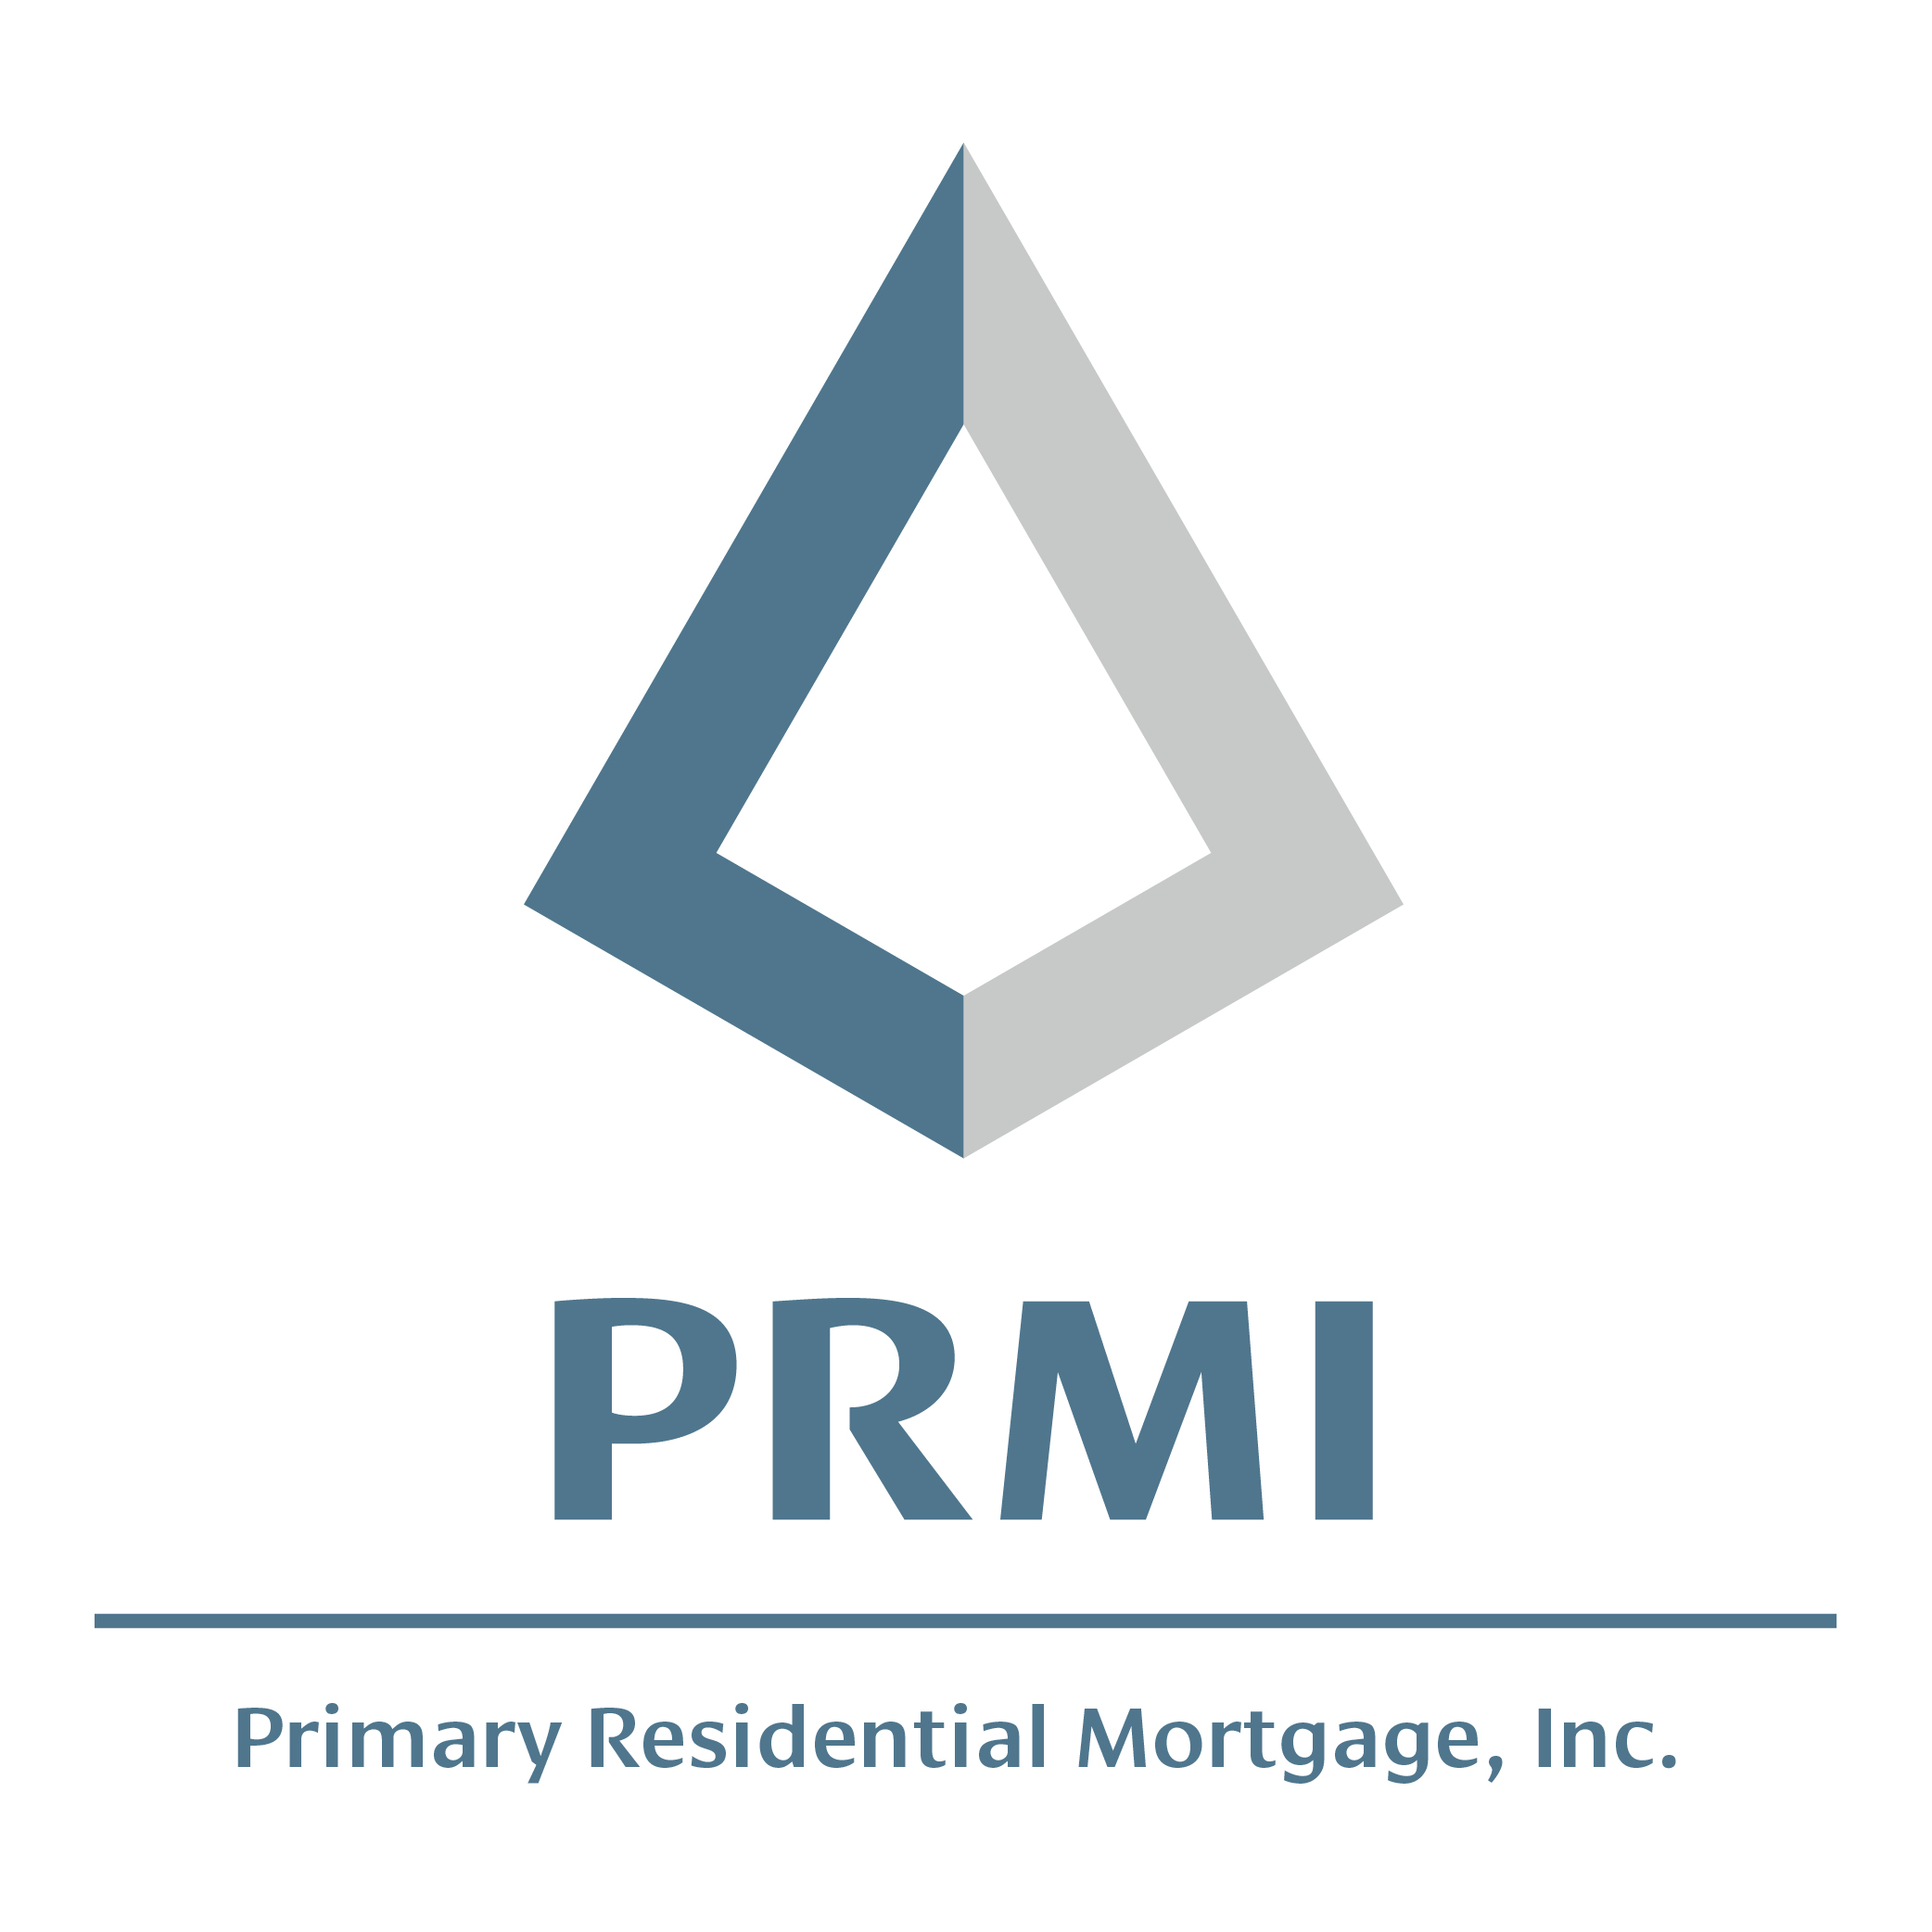 Primary Residential Mortgage, Inc. - Hurst, TX 76054 - (817)393-0180 | ShowMeLocal.com